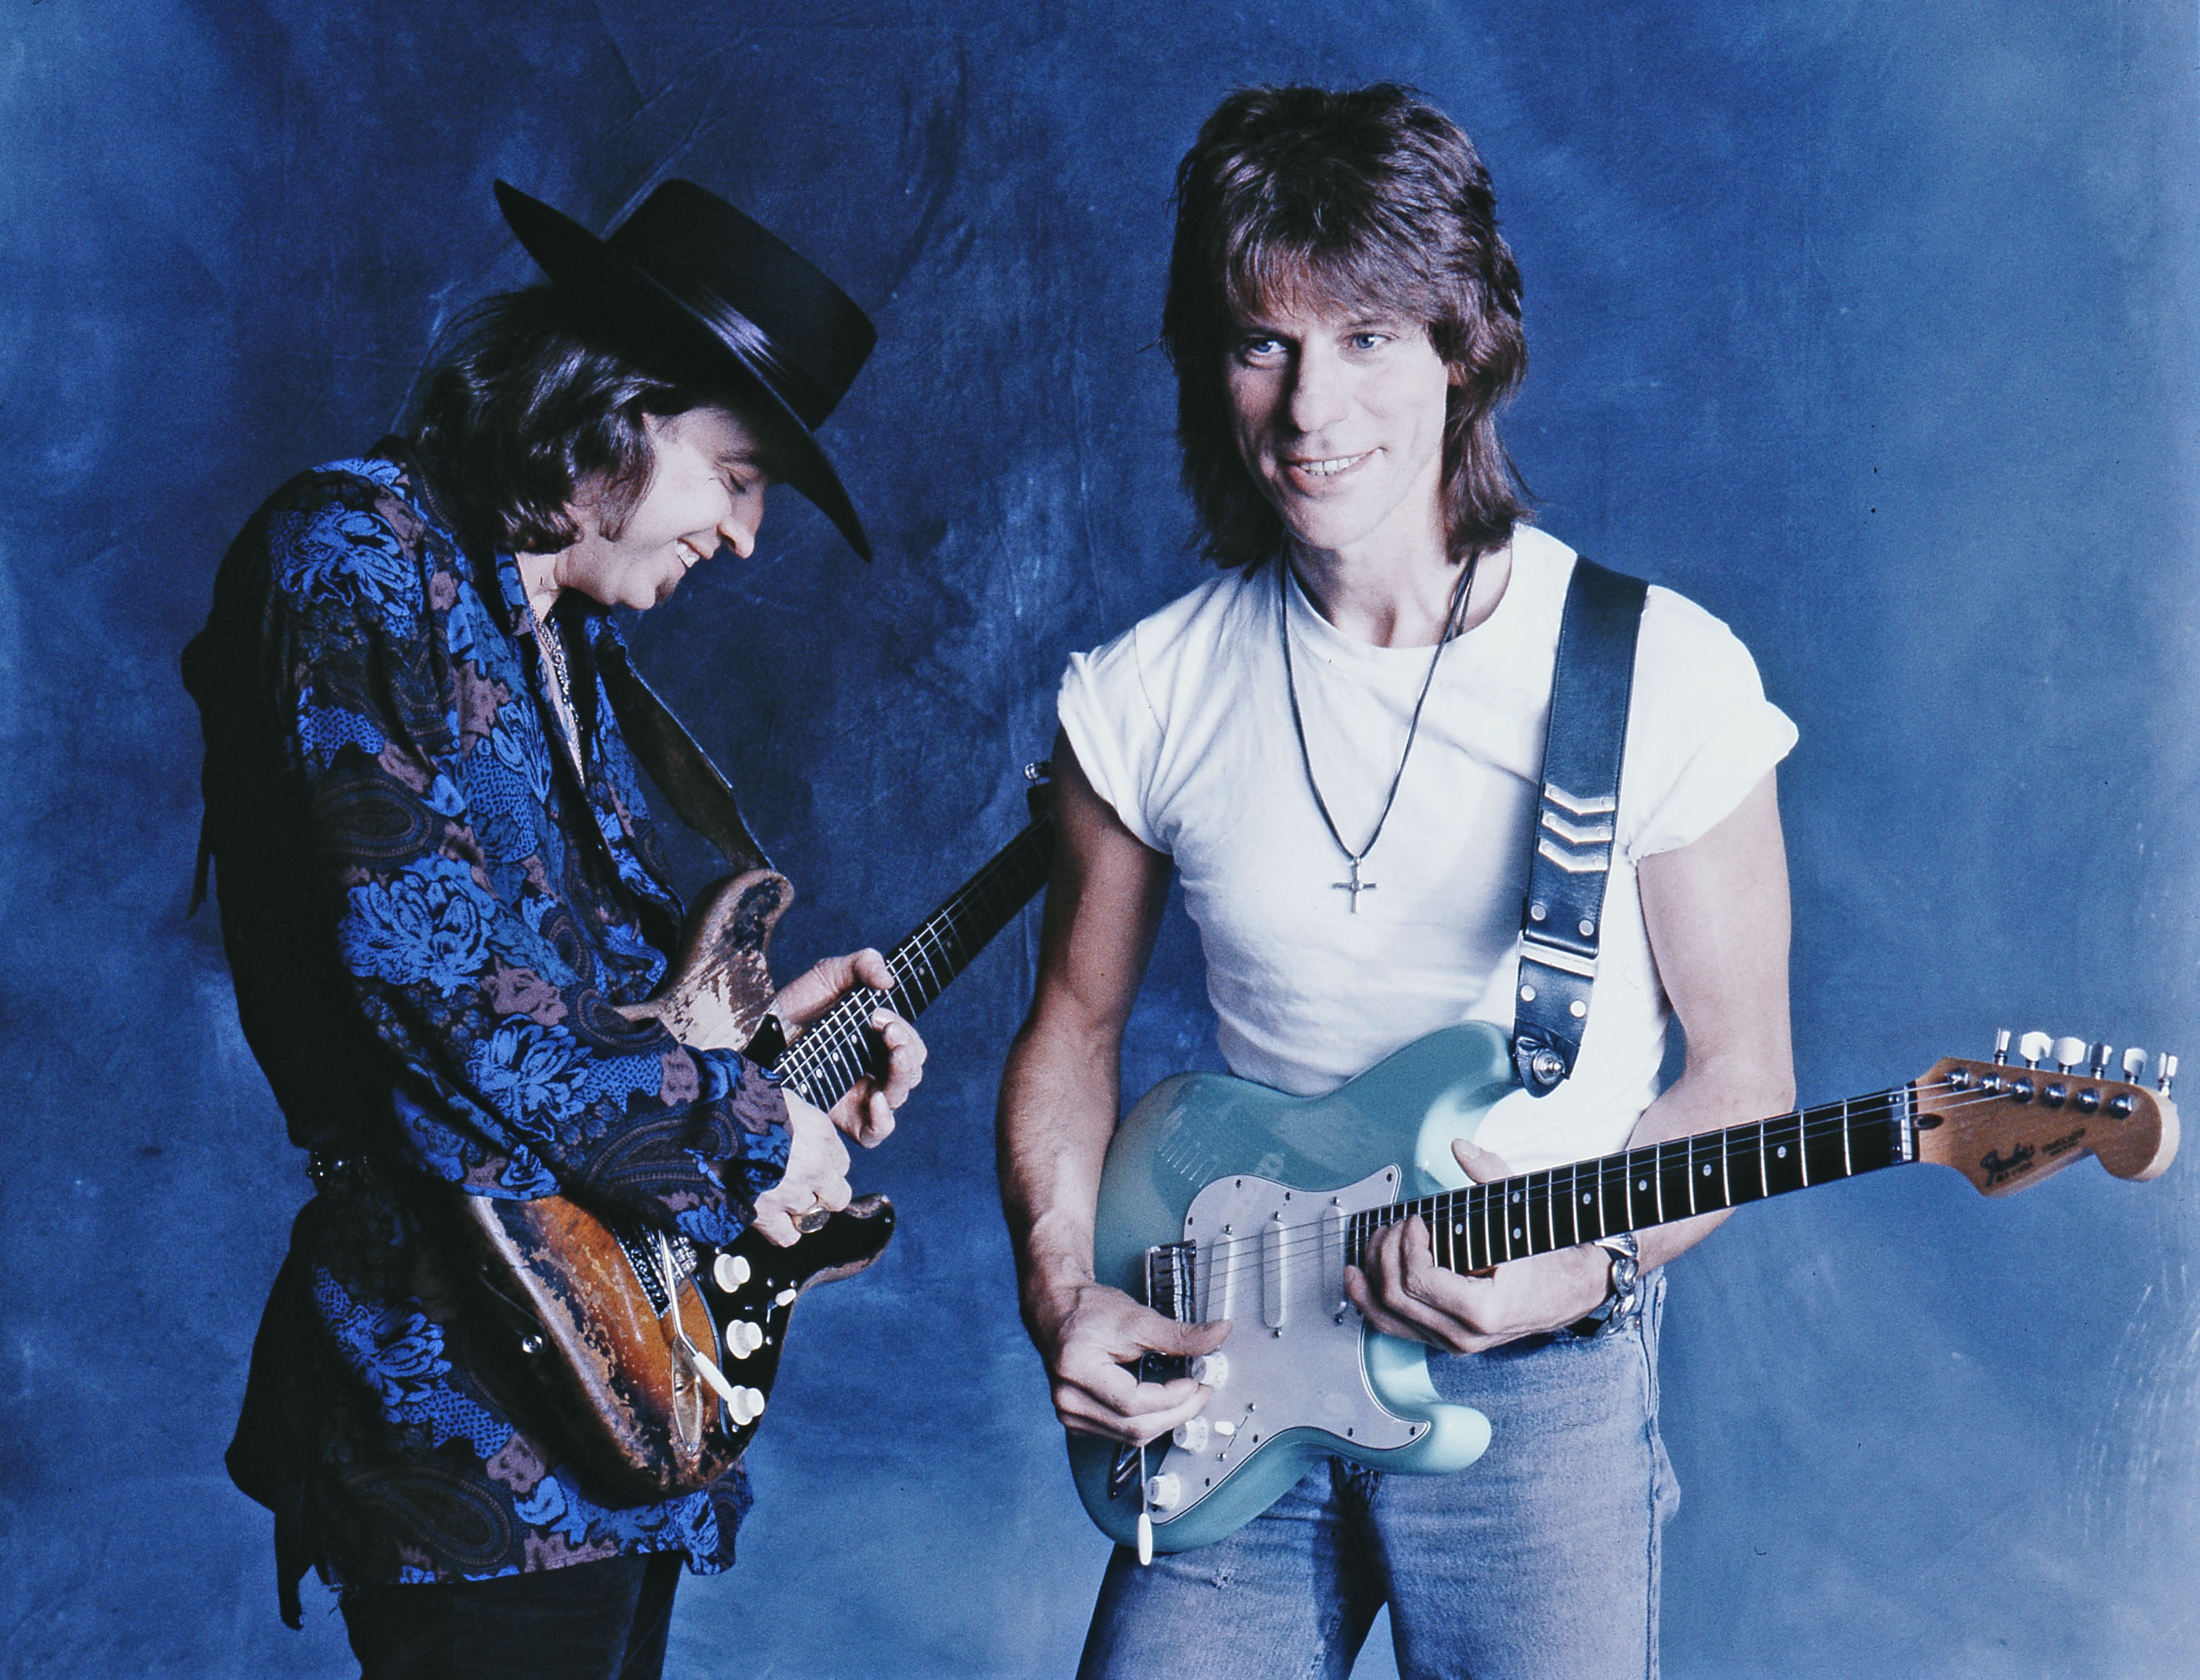 Stevie Ray Vaughn and Jeff Beck Portrait Session 1980